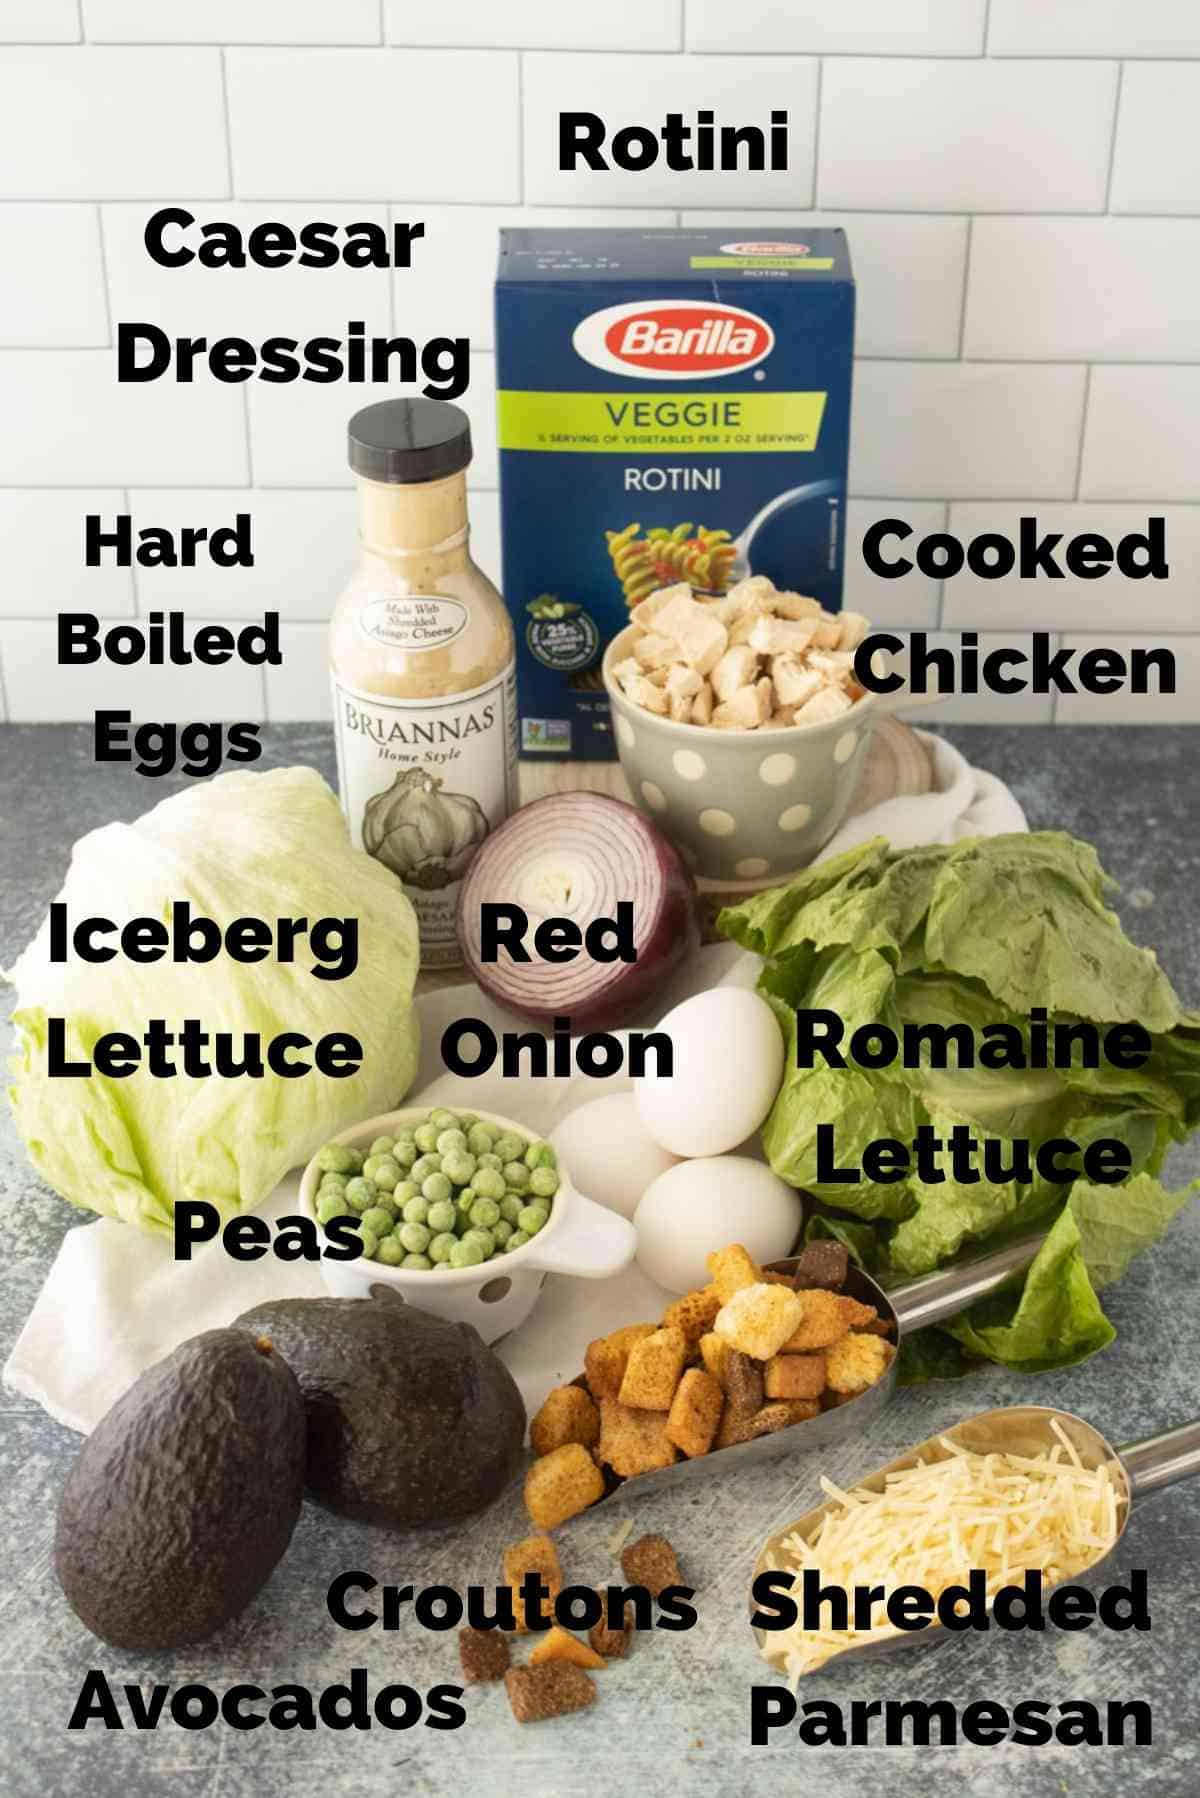 Lettuce, rotini, chicken, caesar dressing and other ingredients to make this dinner salad.